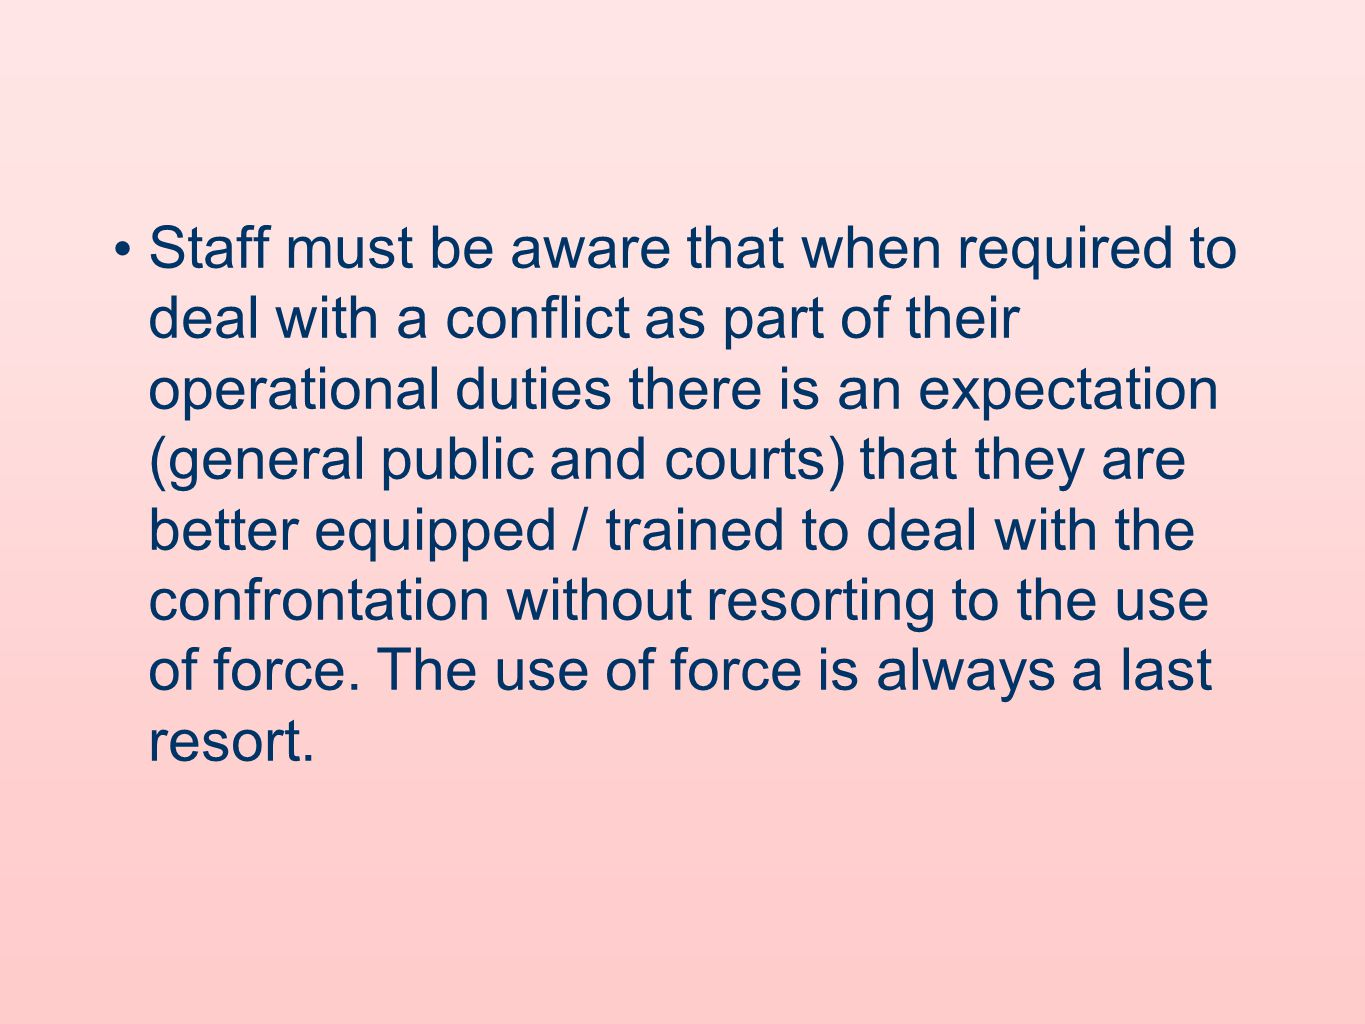 Staff must be aware that when required to deal with a conflict as part of their operational duties there is an expectation (general public and courts) that they are better equipped / trained to deal with the confrontation without resorting to the use of force.